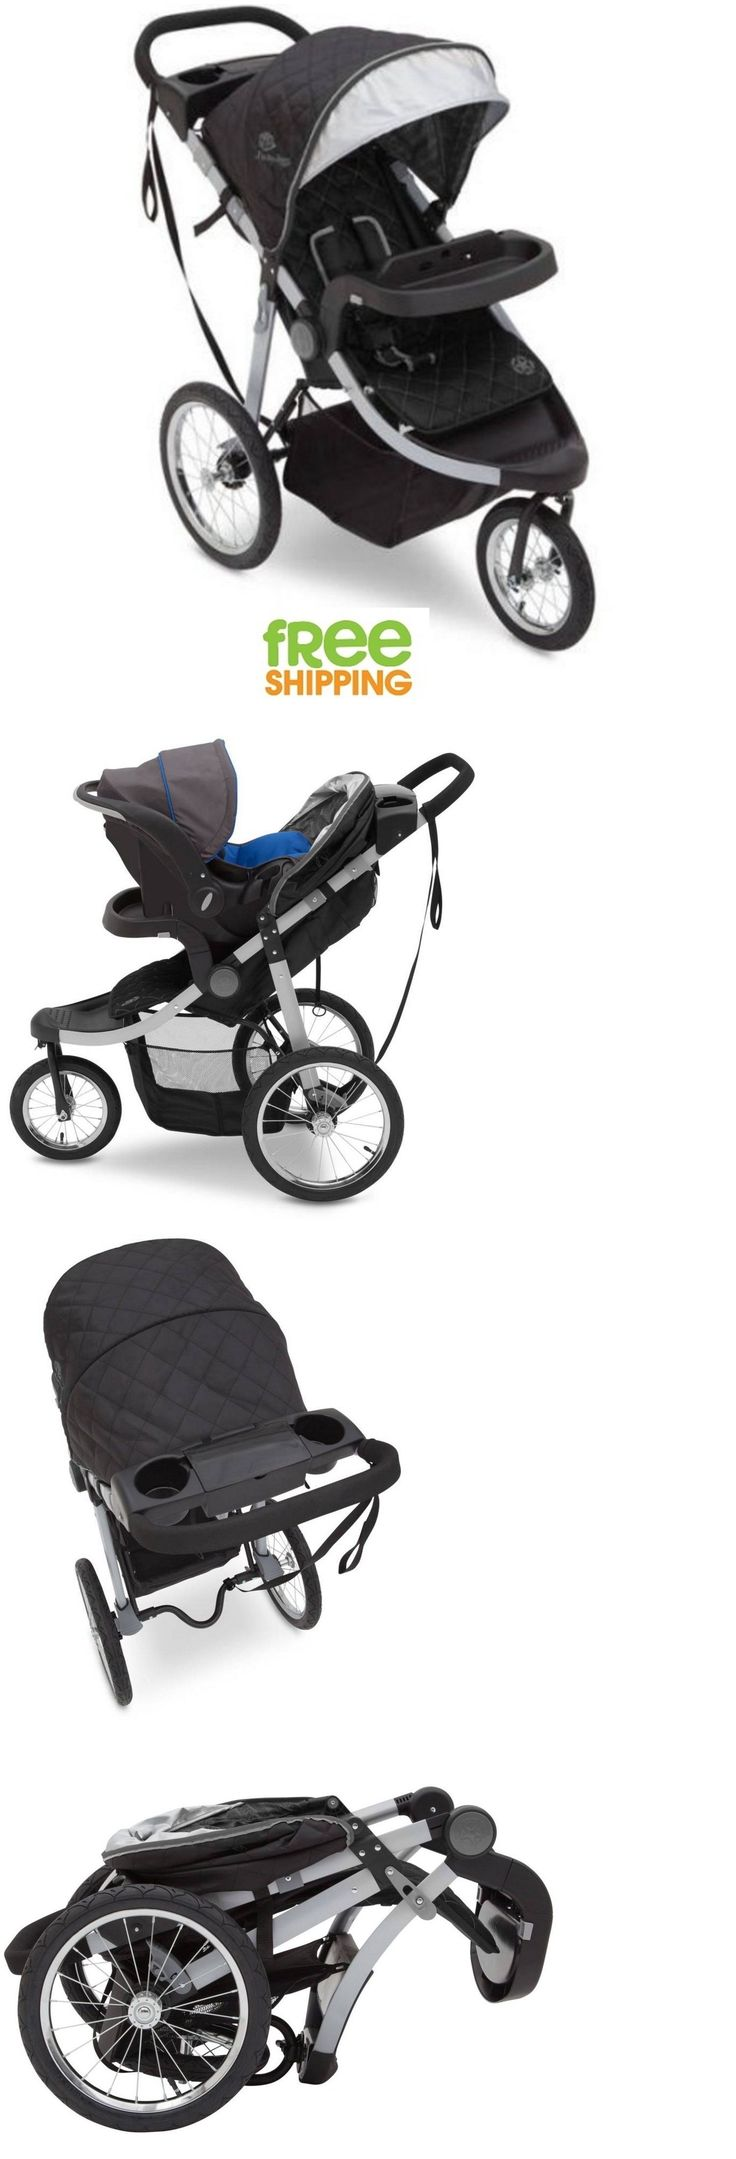 baby kid stuff: 3 Wheel Jogging Stroller Folding Baby Carriage Kids Child Pram Gray New! BUY IT NOW ONLY: $117.74